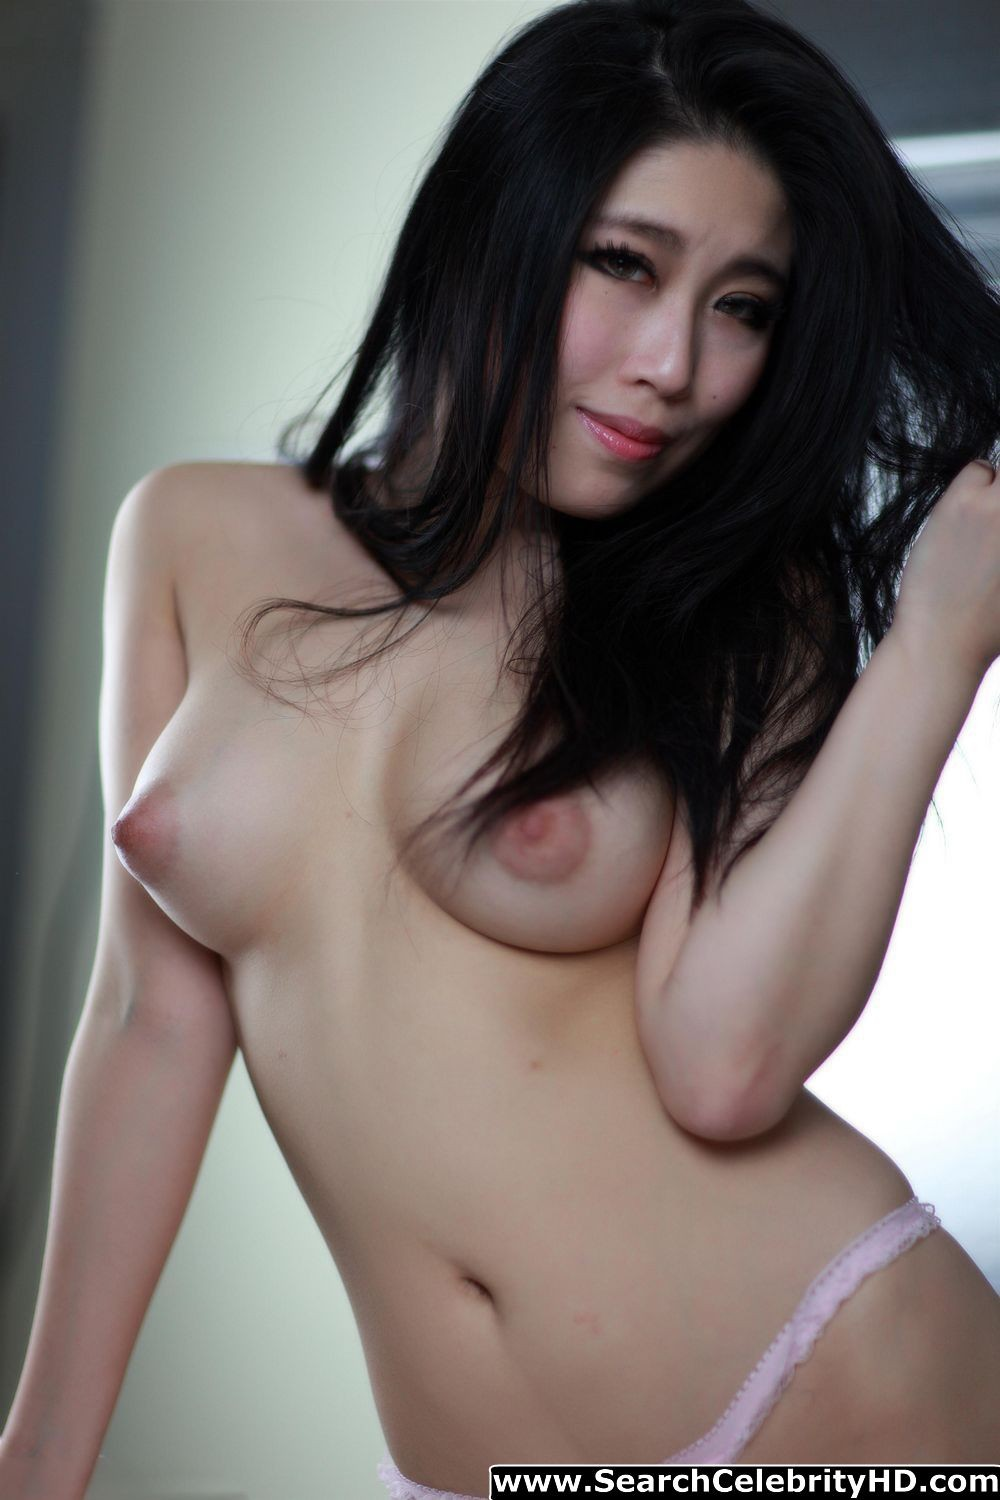 Best Nude Photos Ever 78